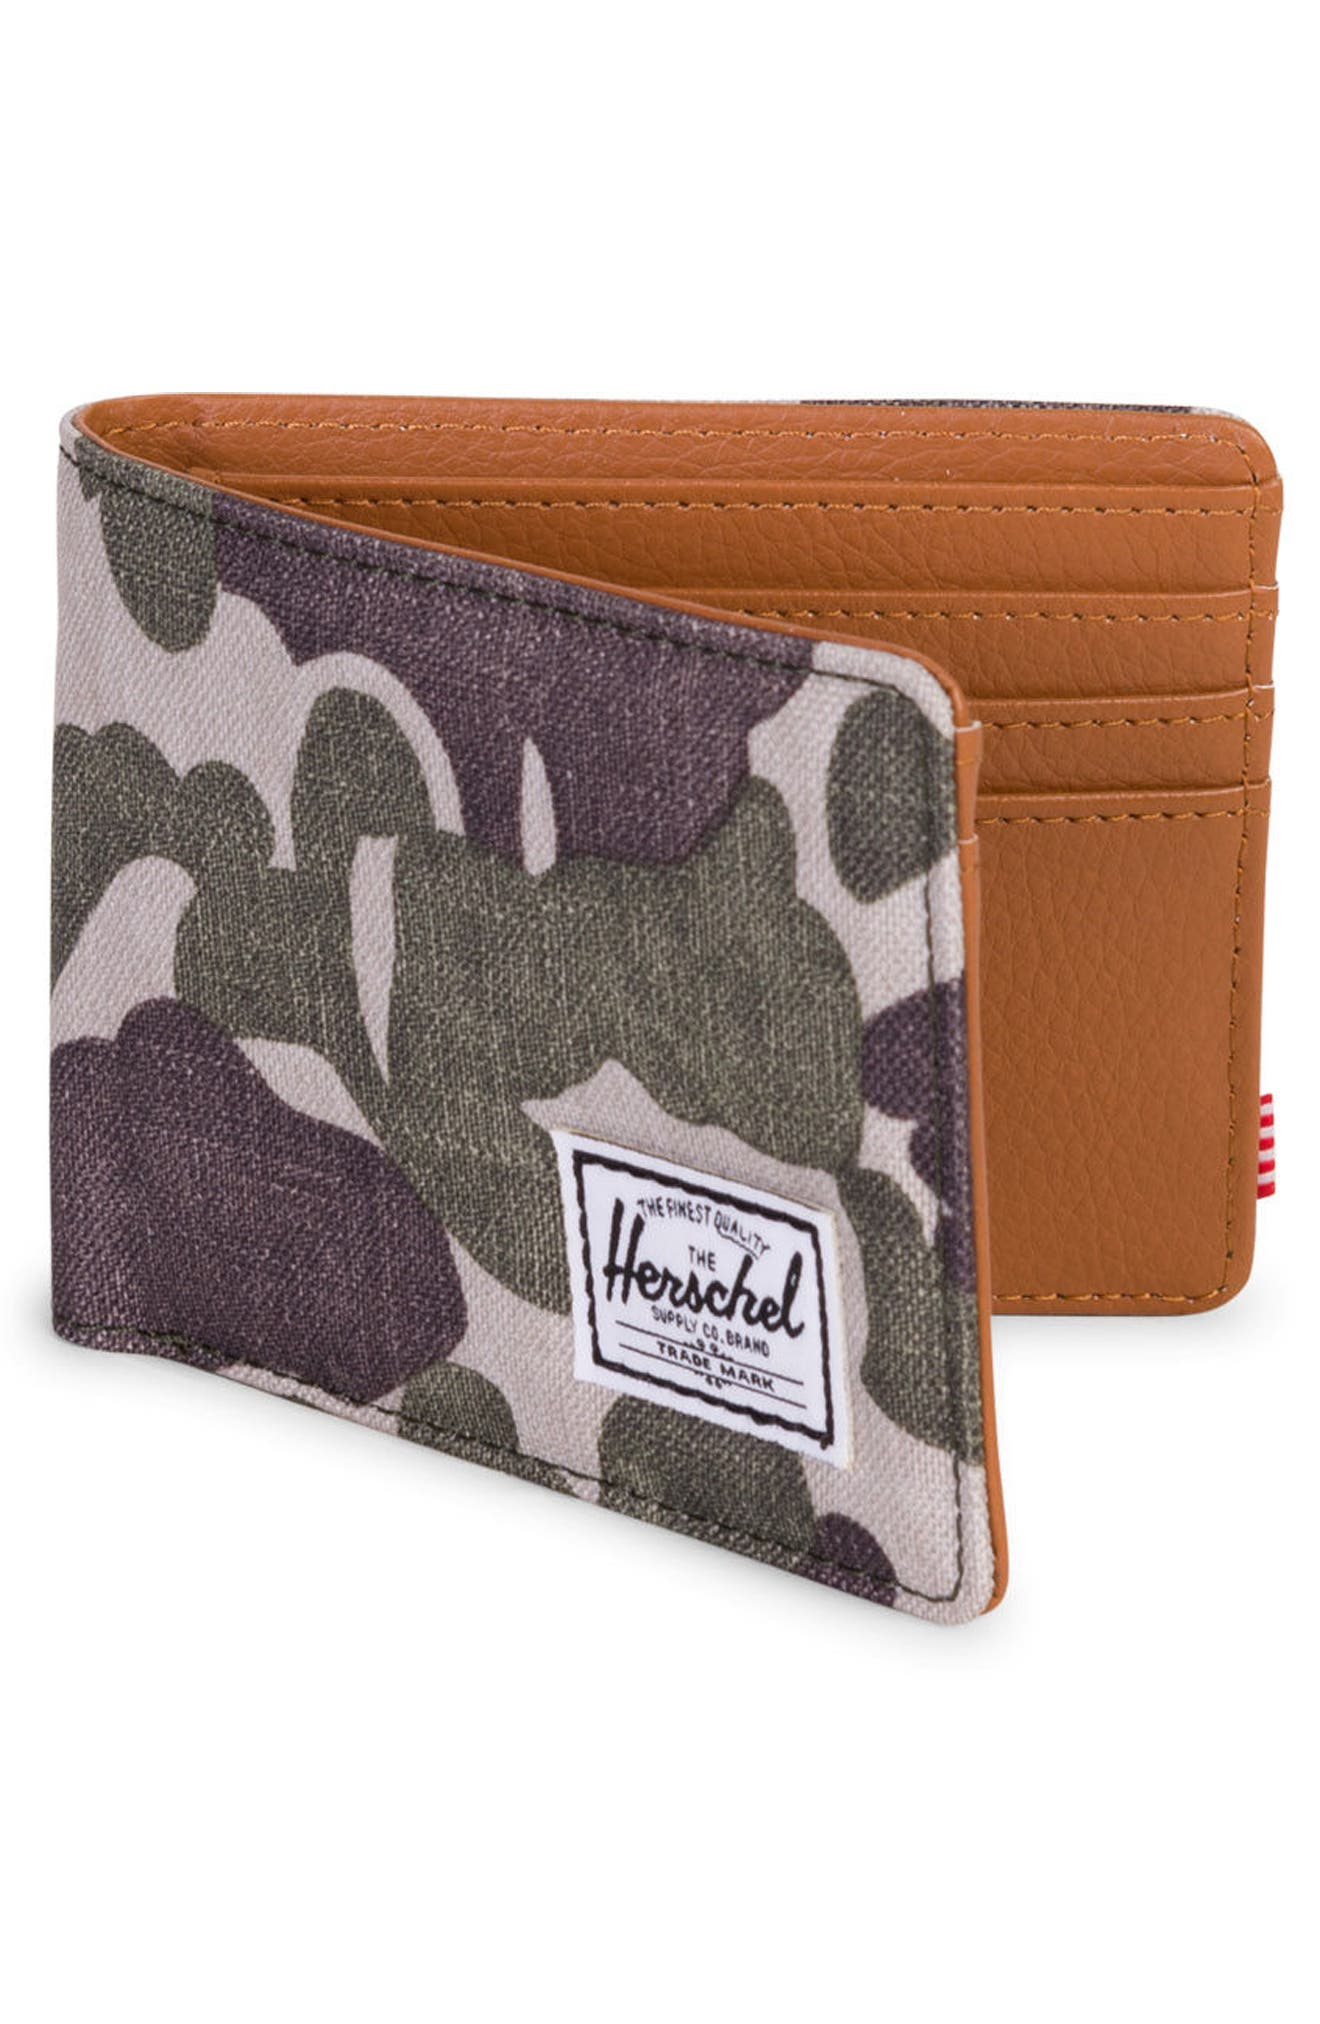 Hank Wallet,                             Alternate thumbnail 3, color,                             Frog Camo/ Tan Synth Leather